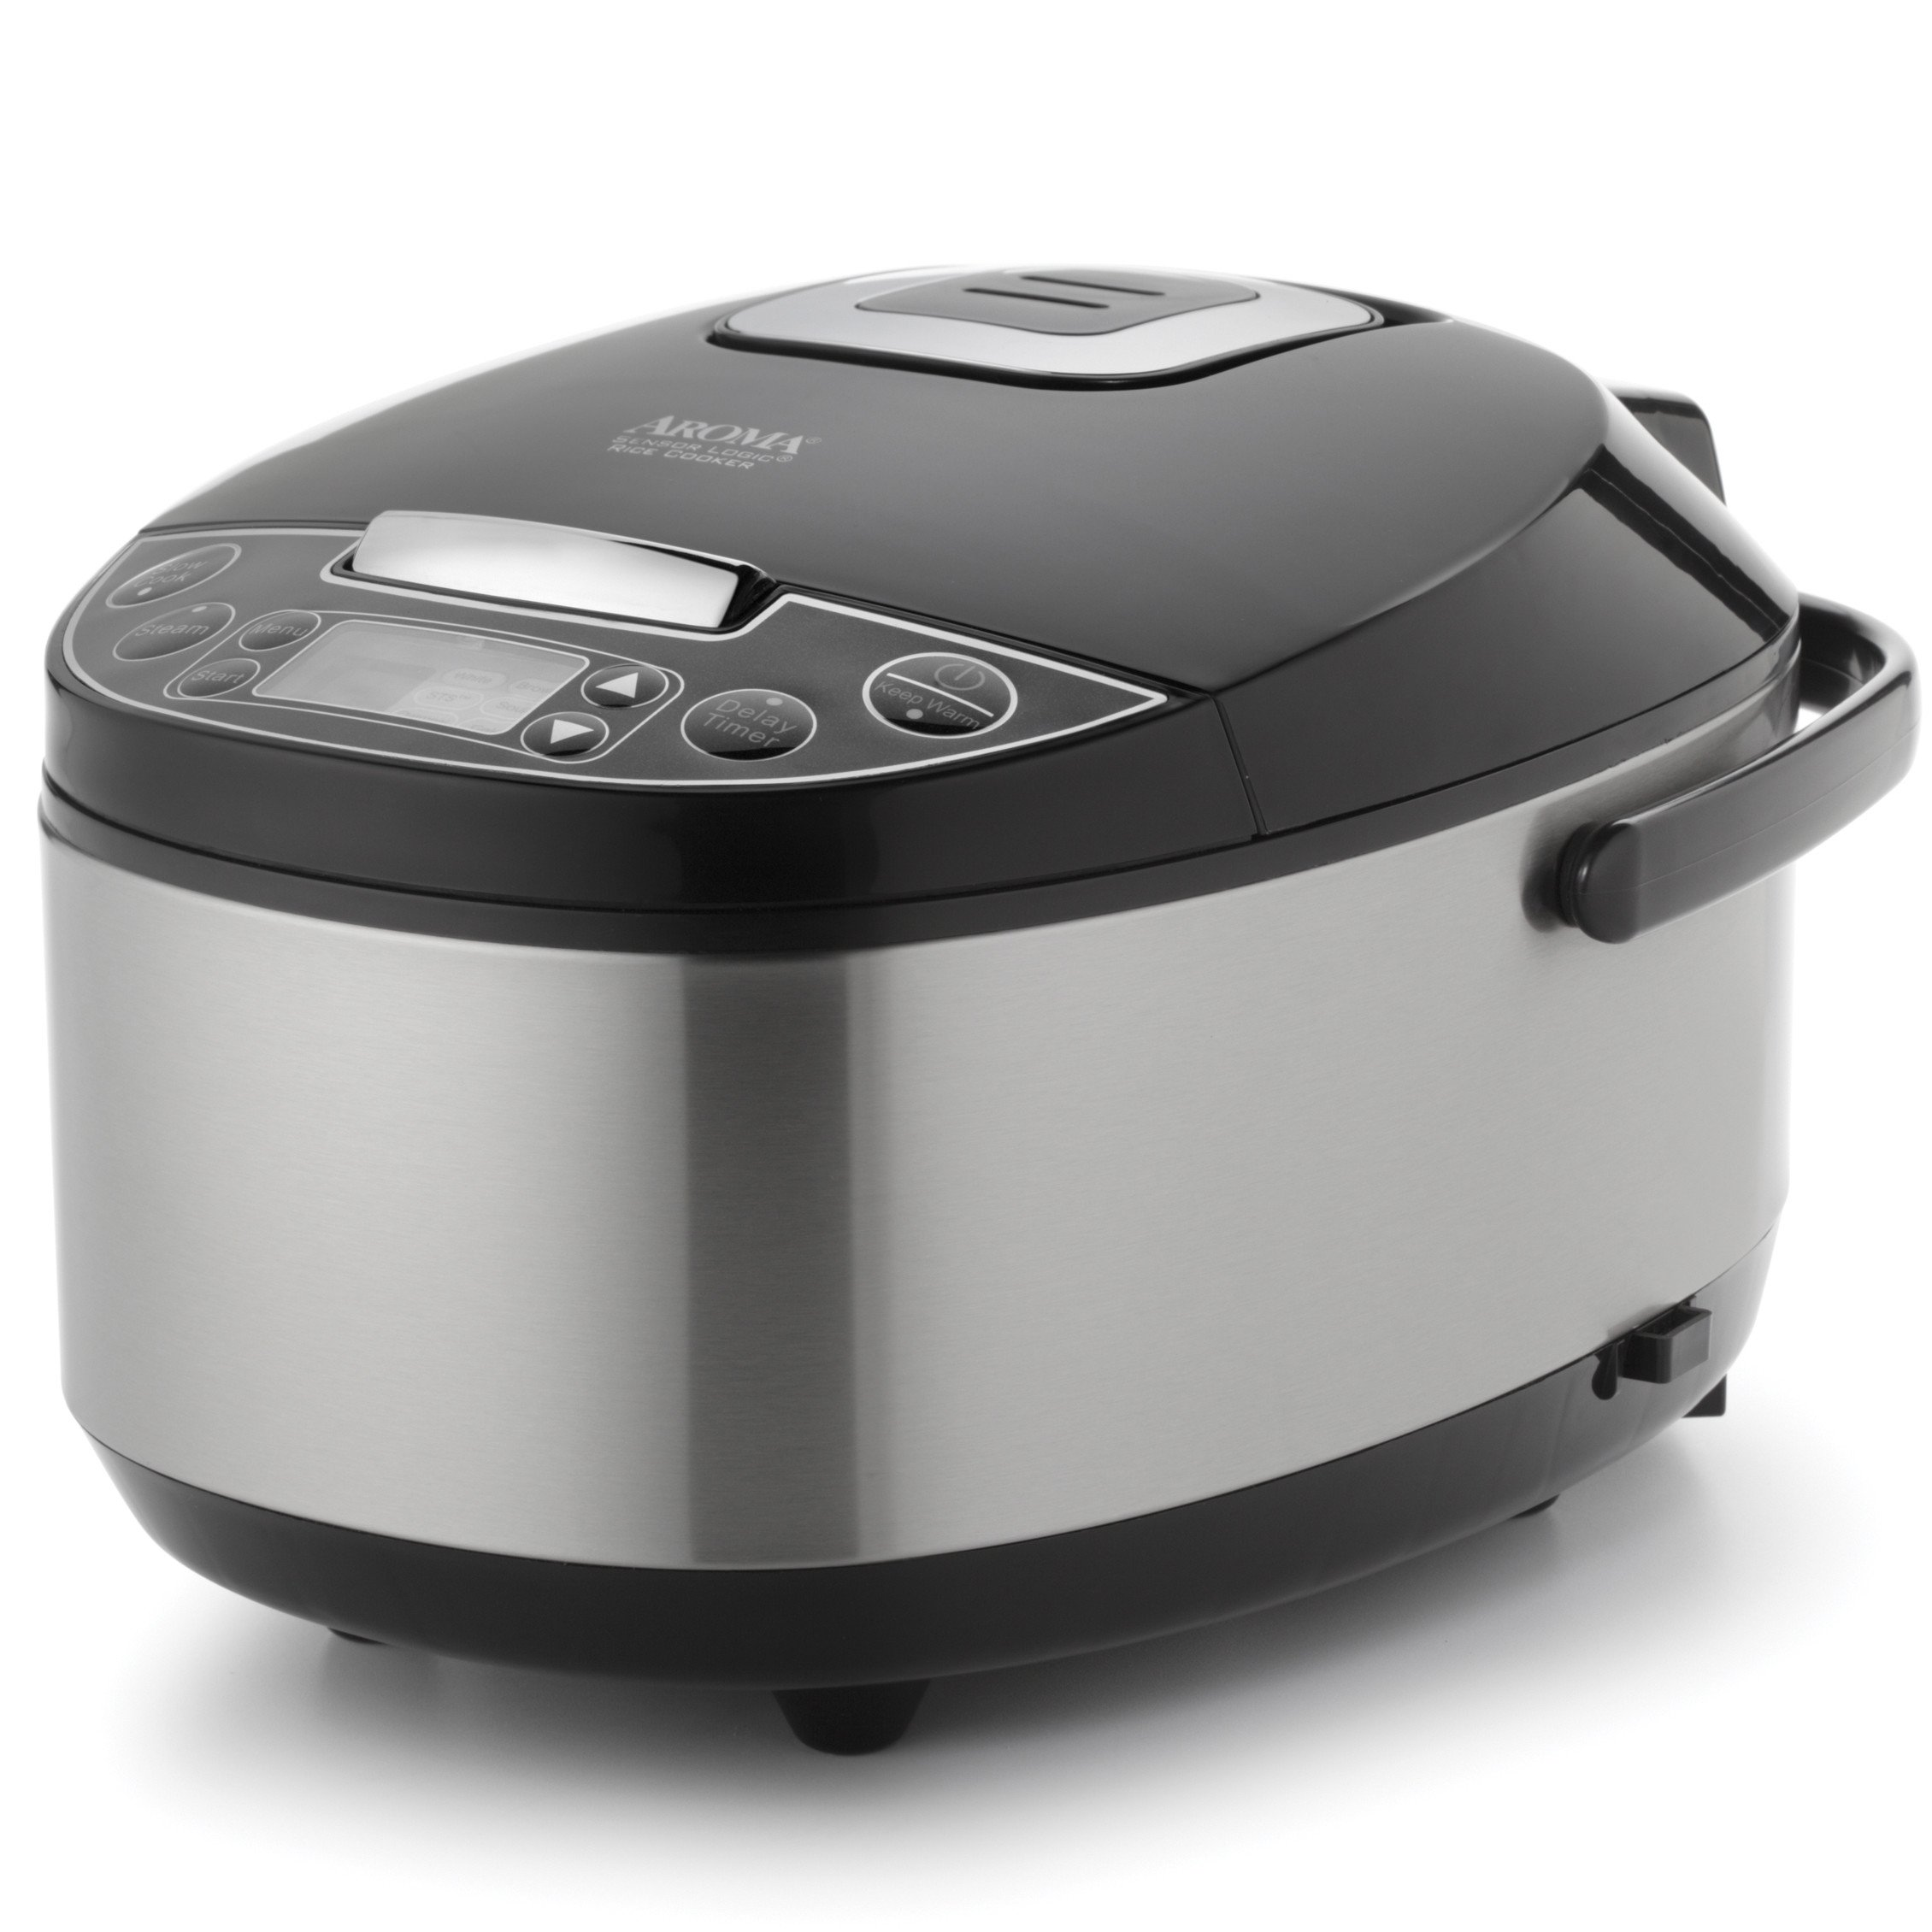 12-Cup Oval Shape Professional Stainless Steel Multifunction Non-Stick Rice Cooker/Food Steamer/Slow Cooker w/ Digital Control Temperature Settings, Warming Setting & Steaming Basket